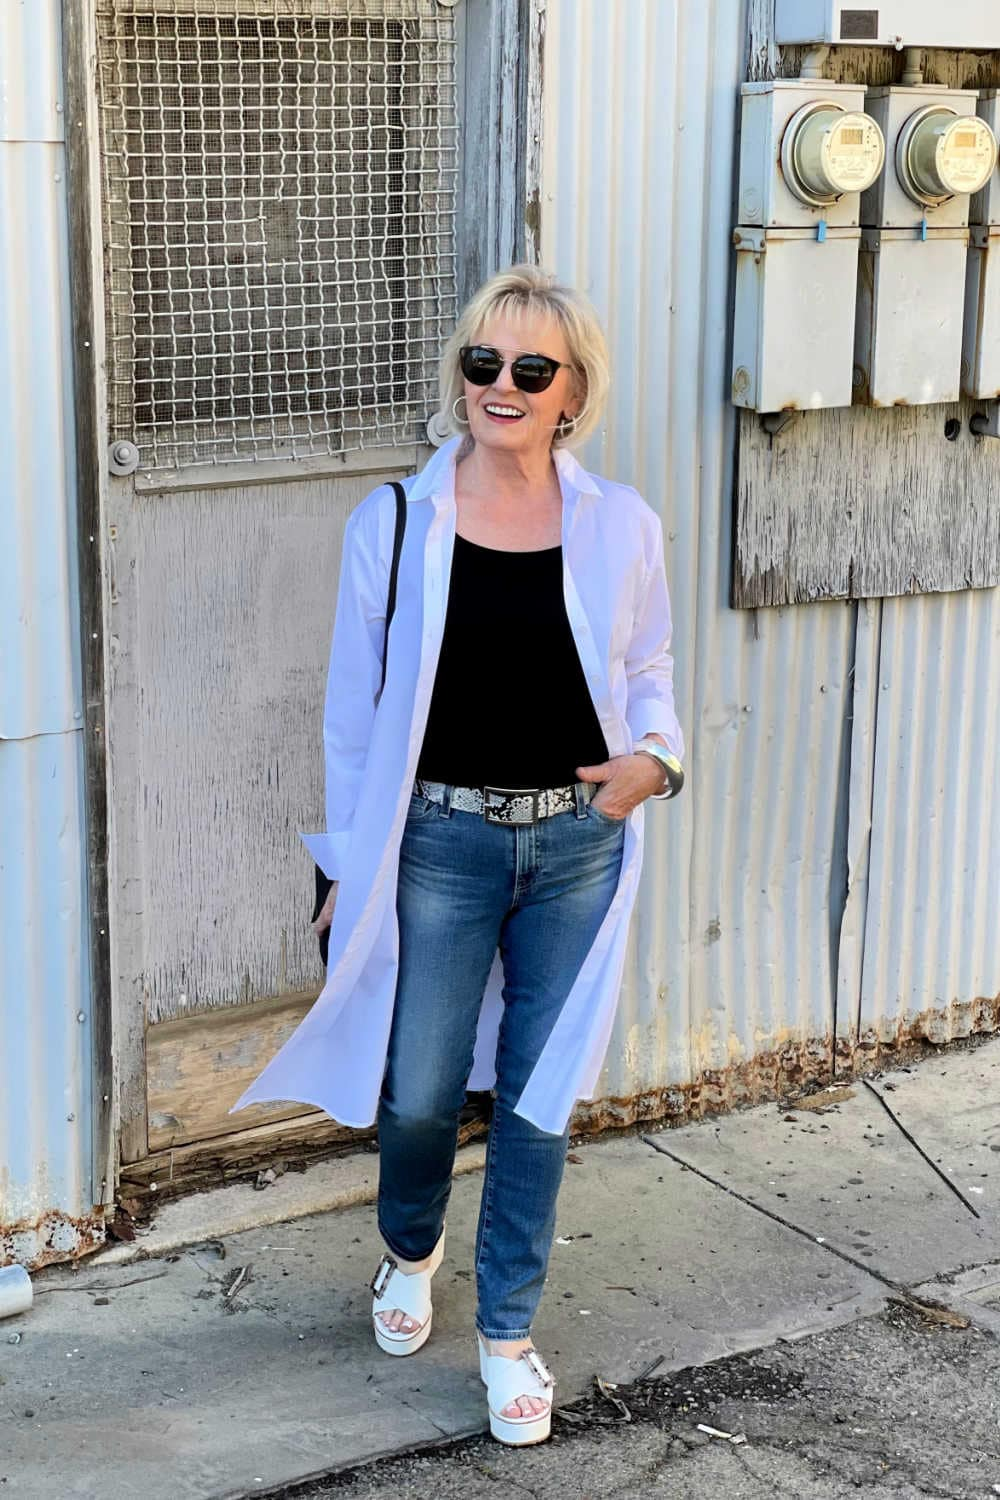 over 50 women walking in black and white outfit with blue jeans